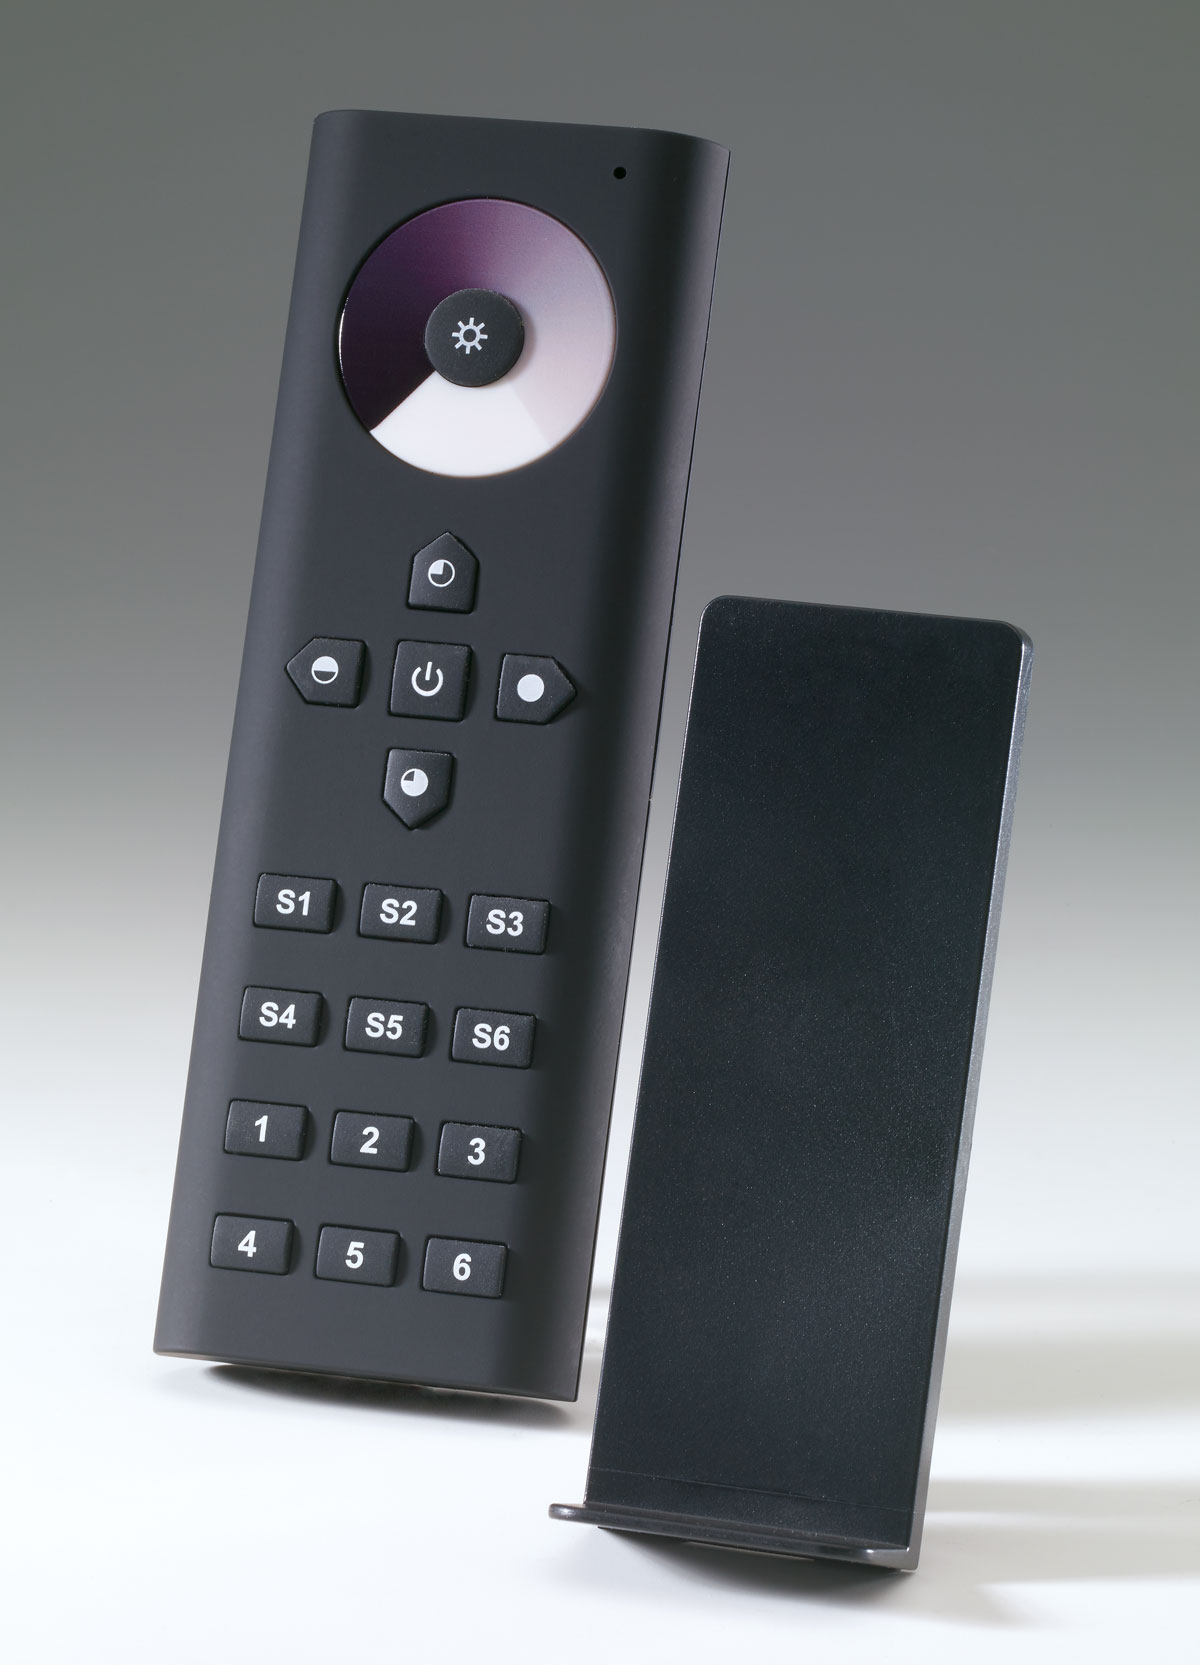 Premium remote control dimmer, zone management, favorites